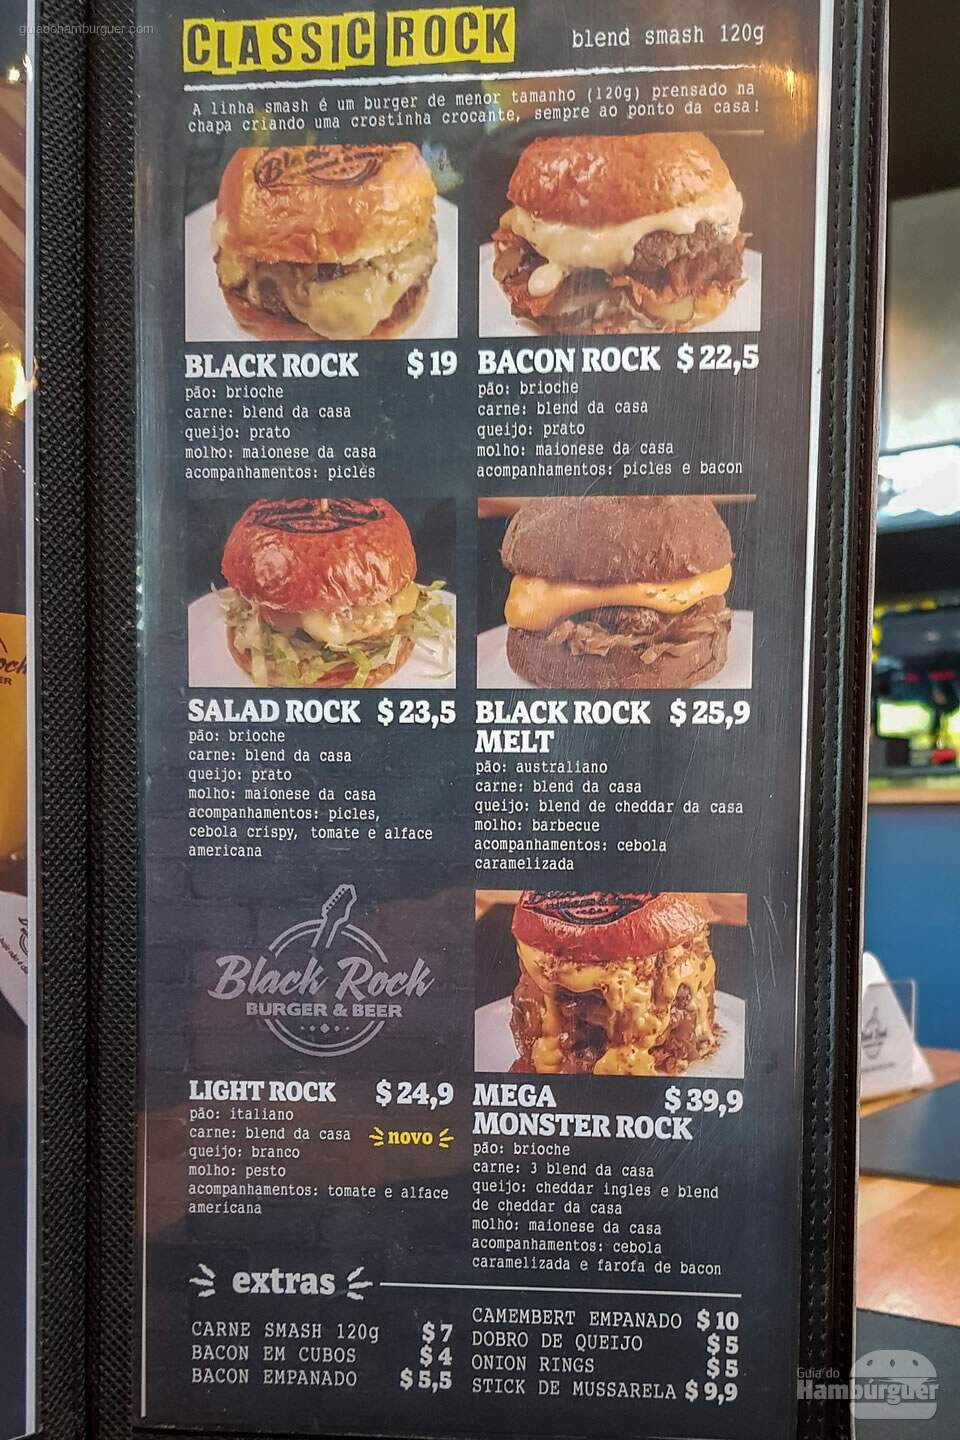 Cardápio - Black Rock Burger Beer